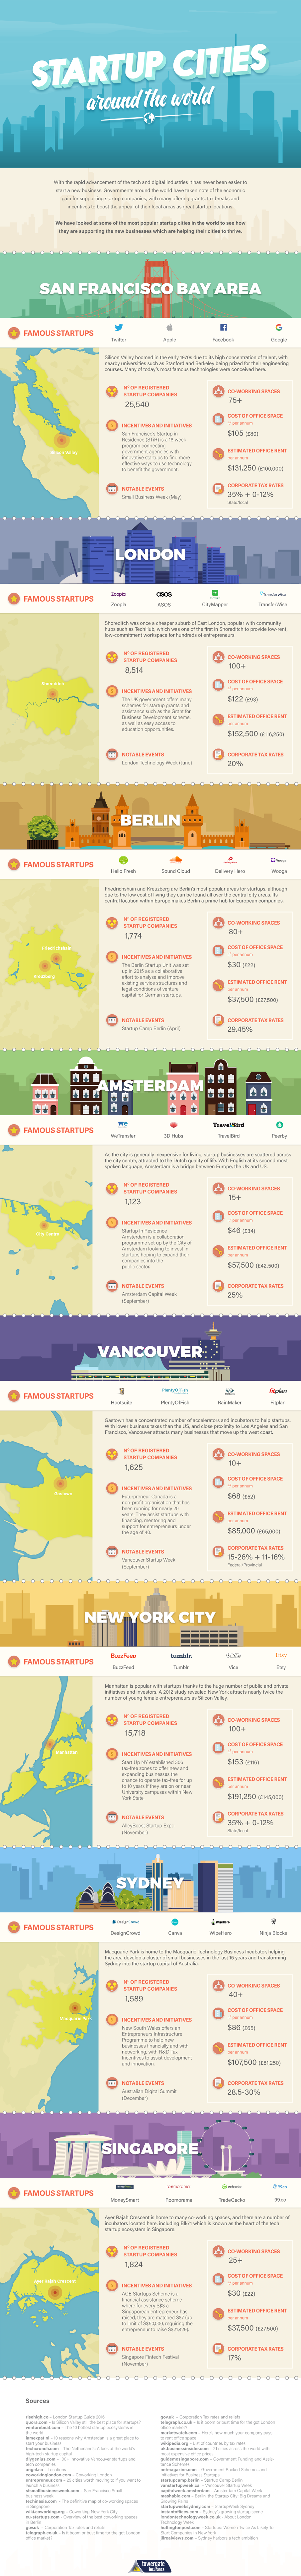 Best Startup Cities Around the World #Infographic